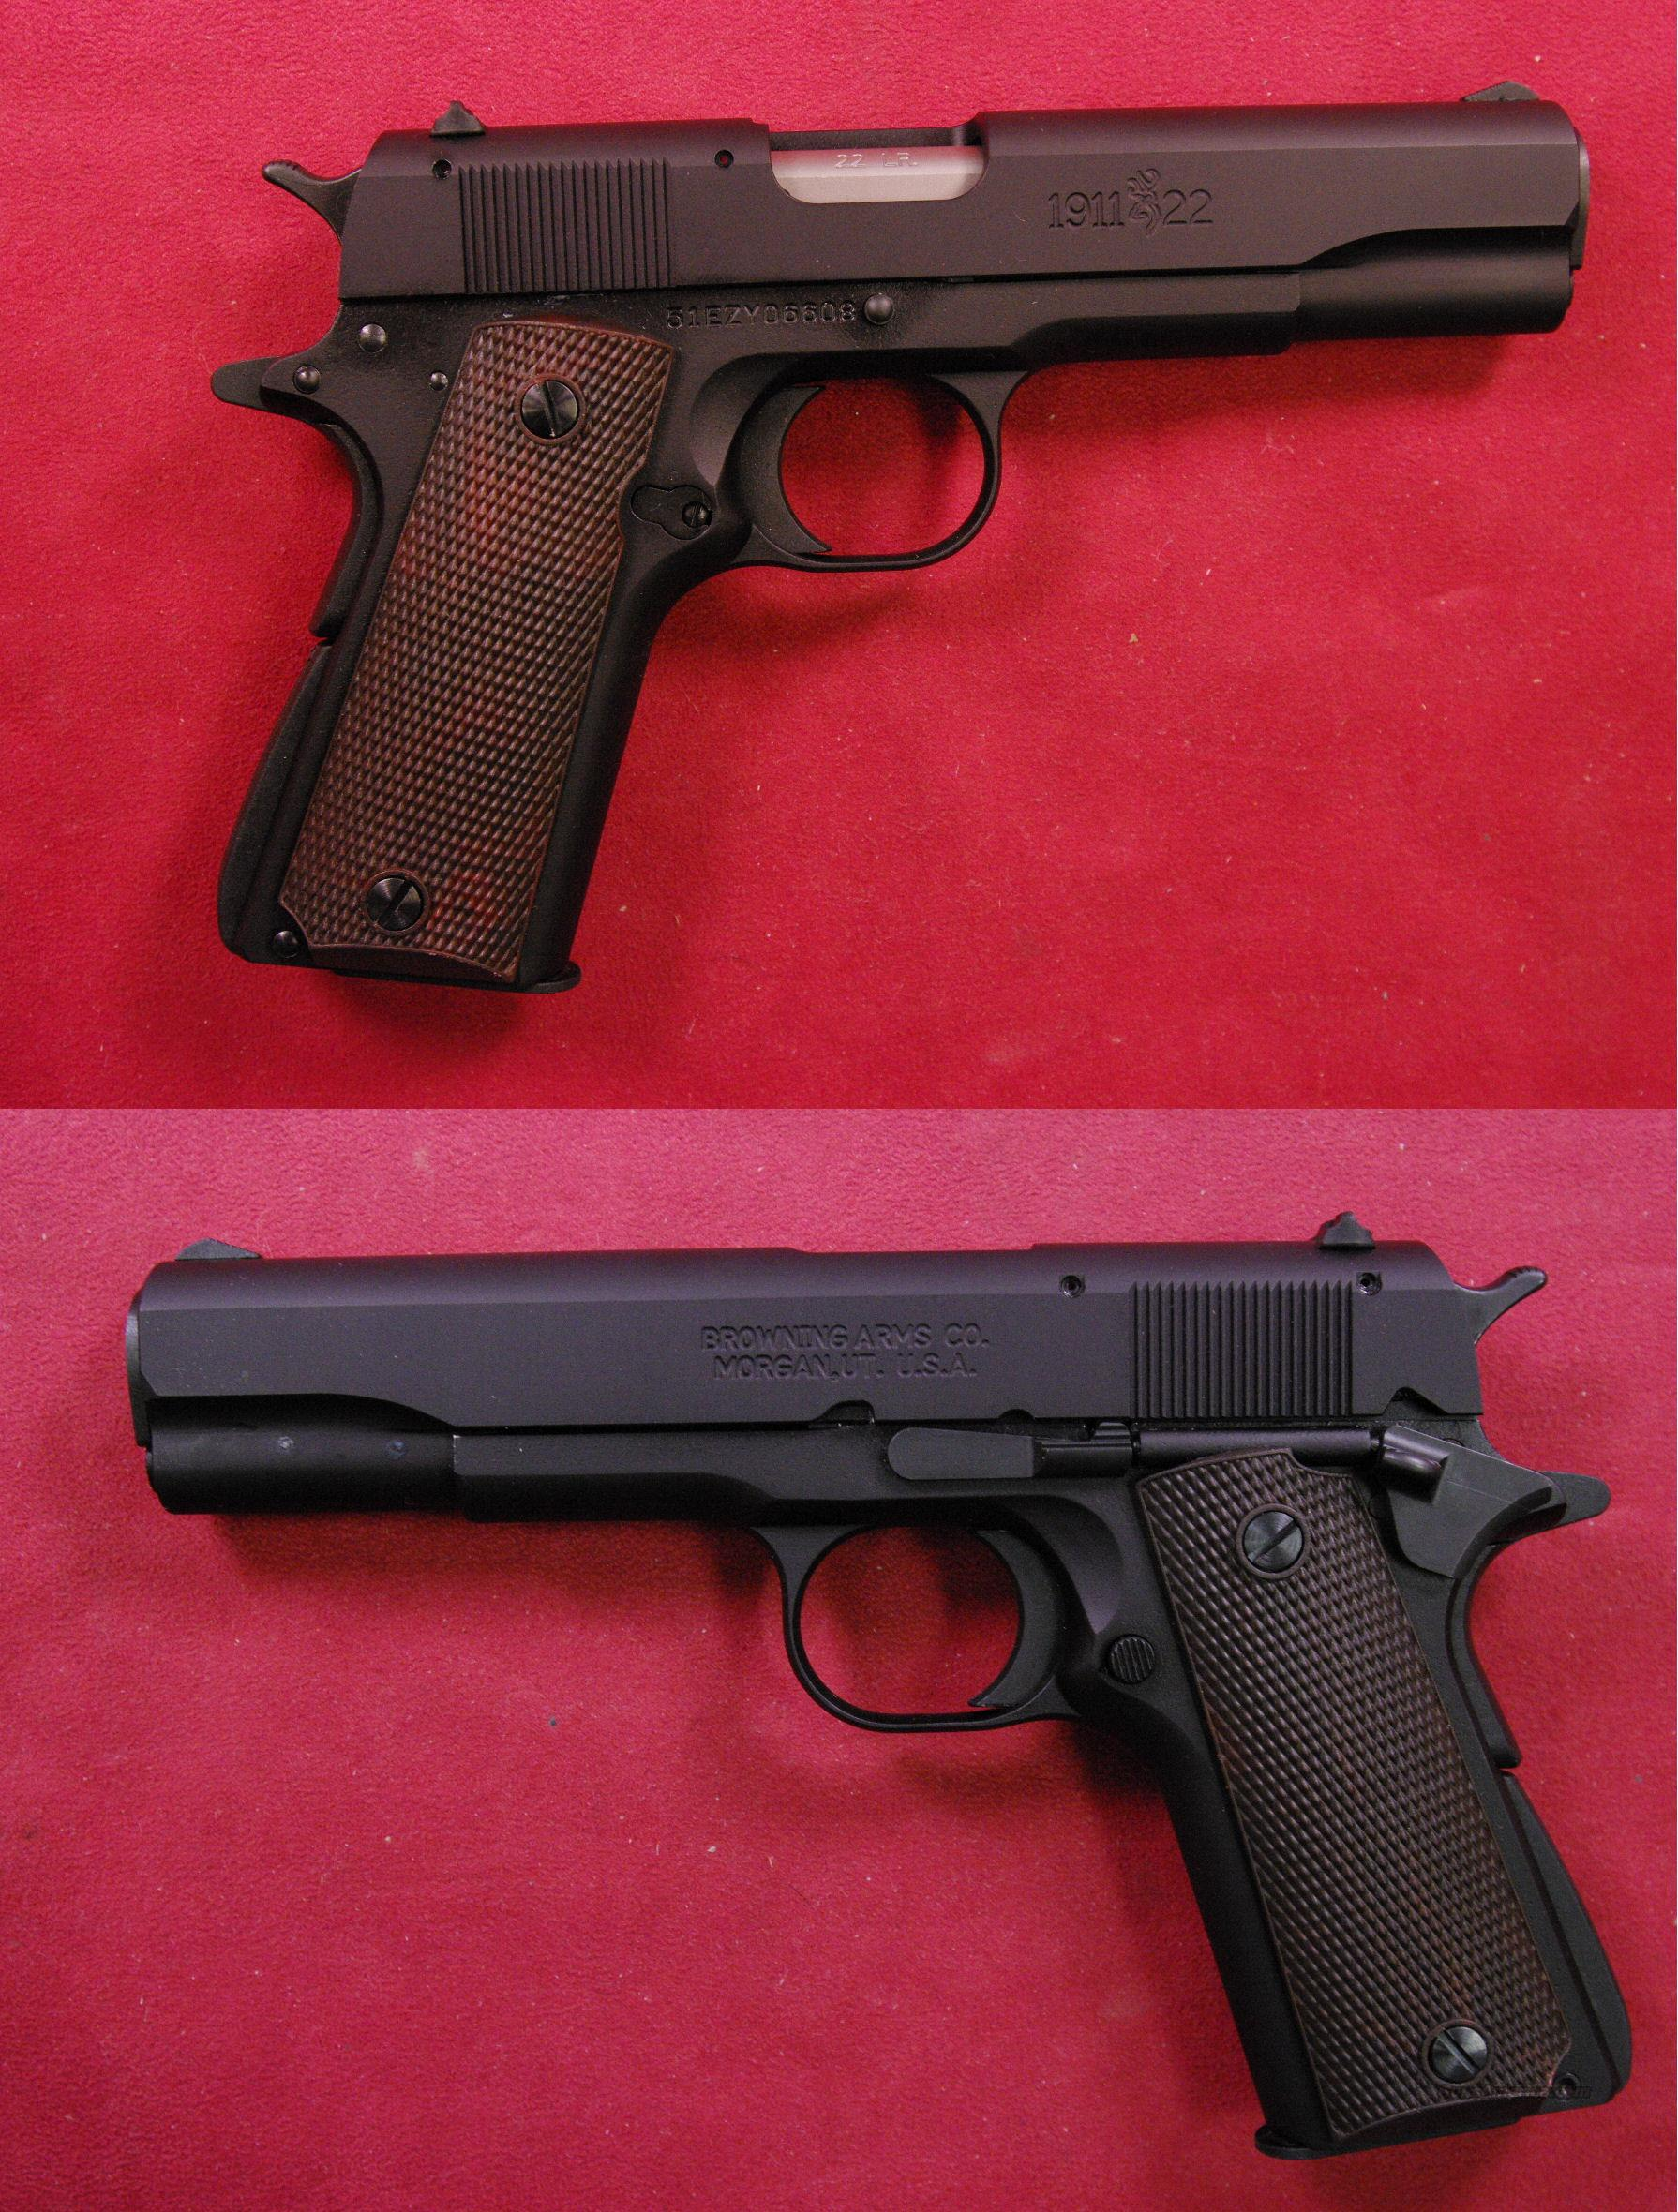 BROWNING 1911-22A1  Guns > Pistols > Browning Pistols > Other Autos